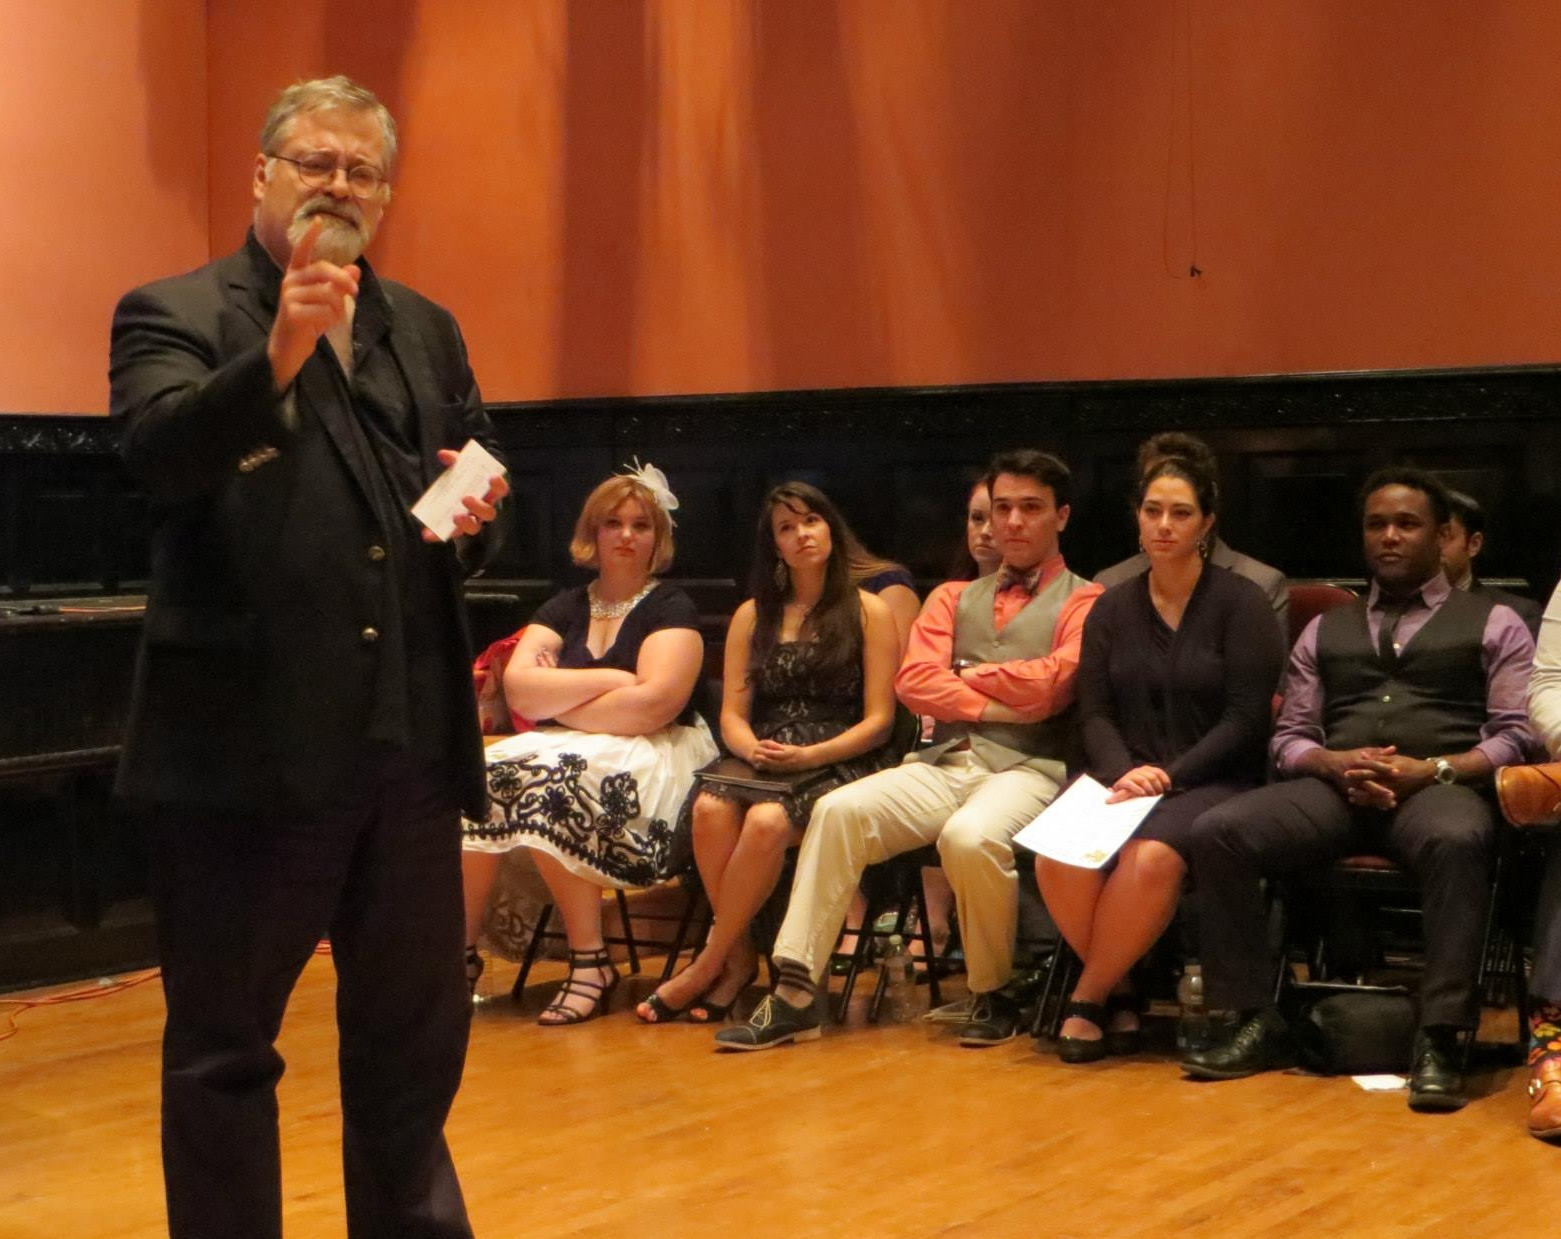 Lecturing on Onegin's libretto to Ghenady Meierson's Russian Opera Workshop at the Academy of Vocal Arts in Philadelphia in summer 2014.